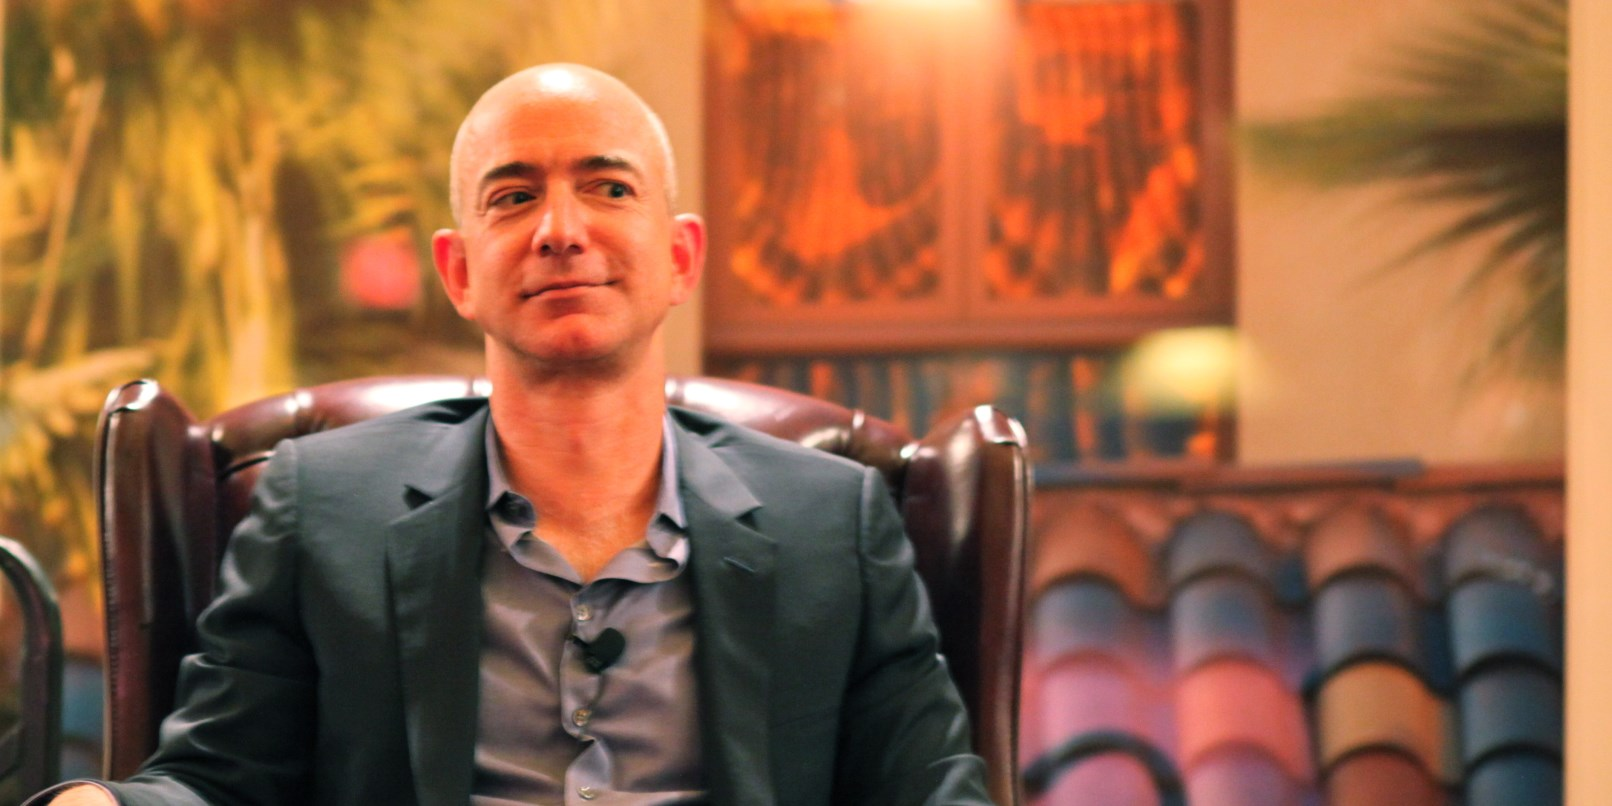 Jeff Bezos responds to attack on Amazon's employment practices